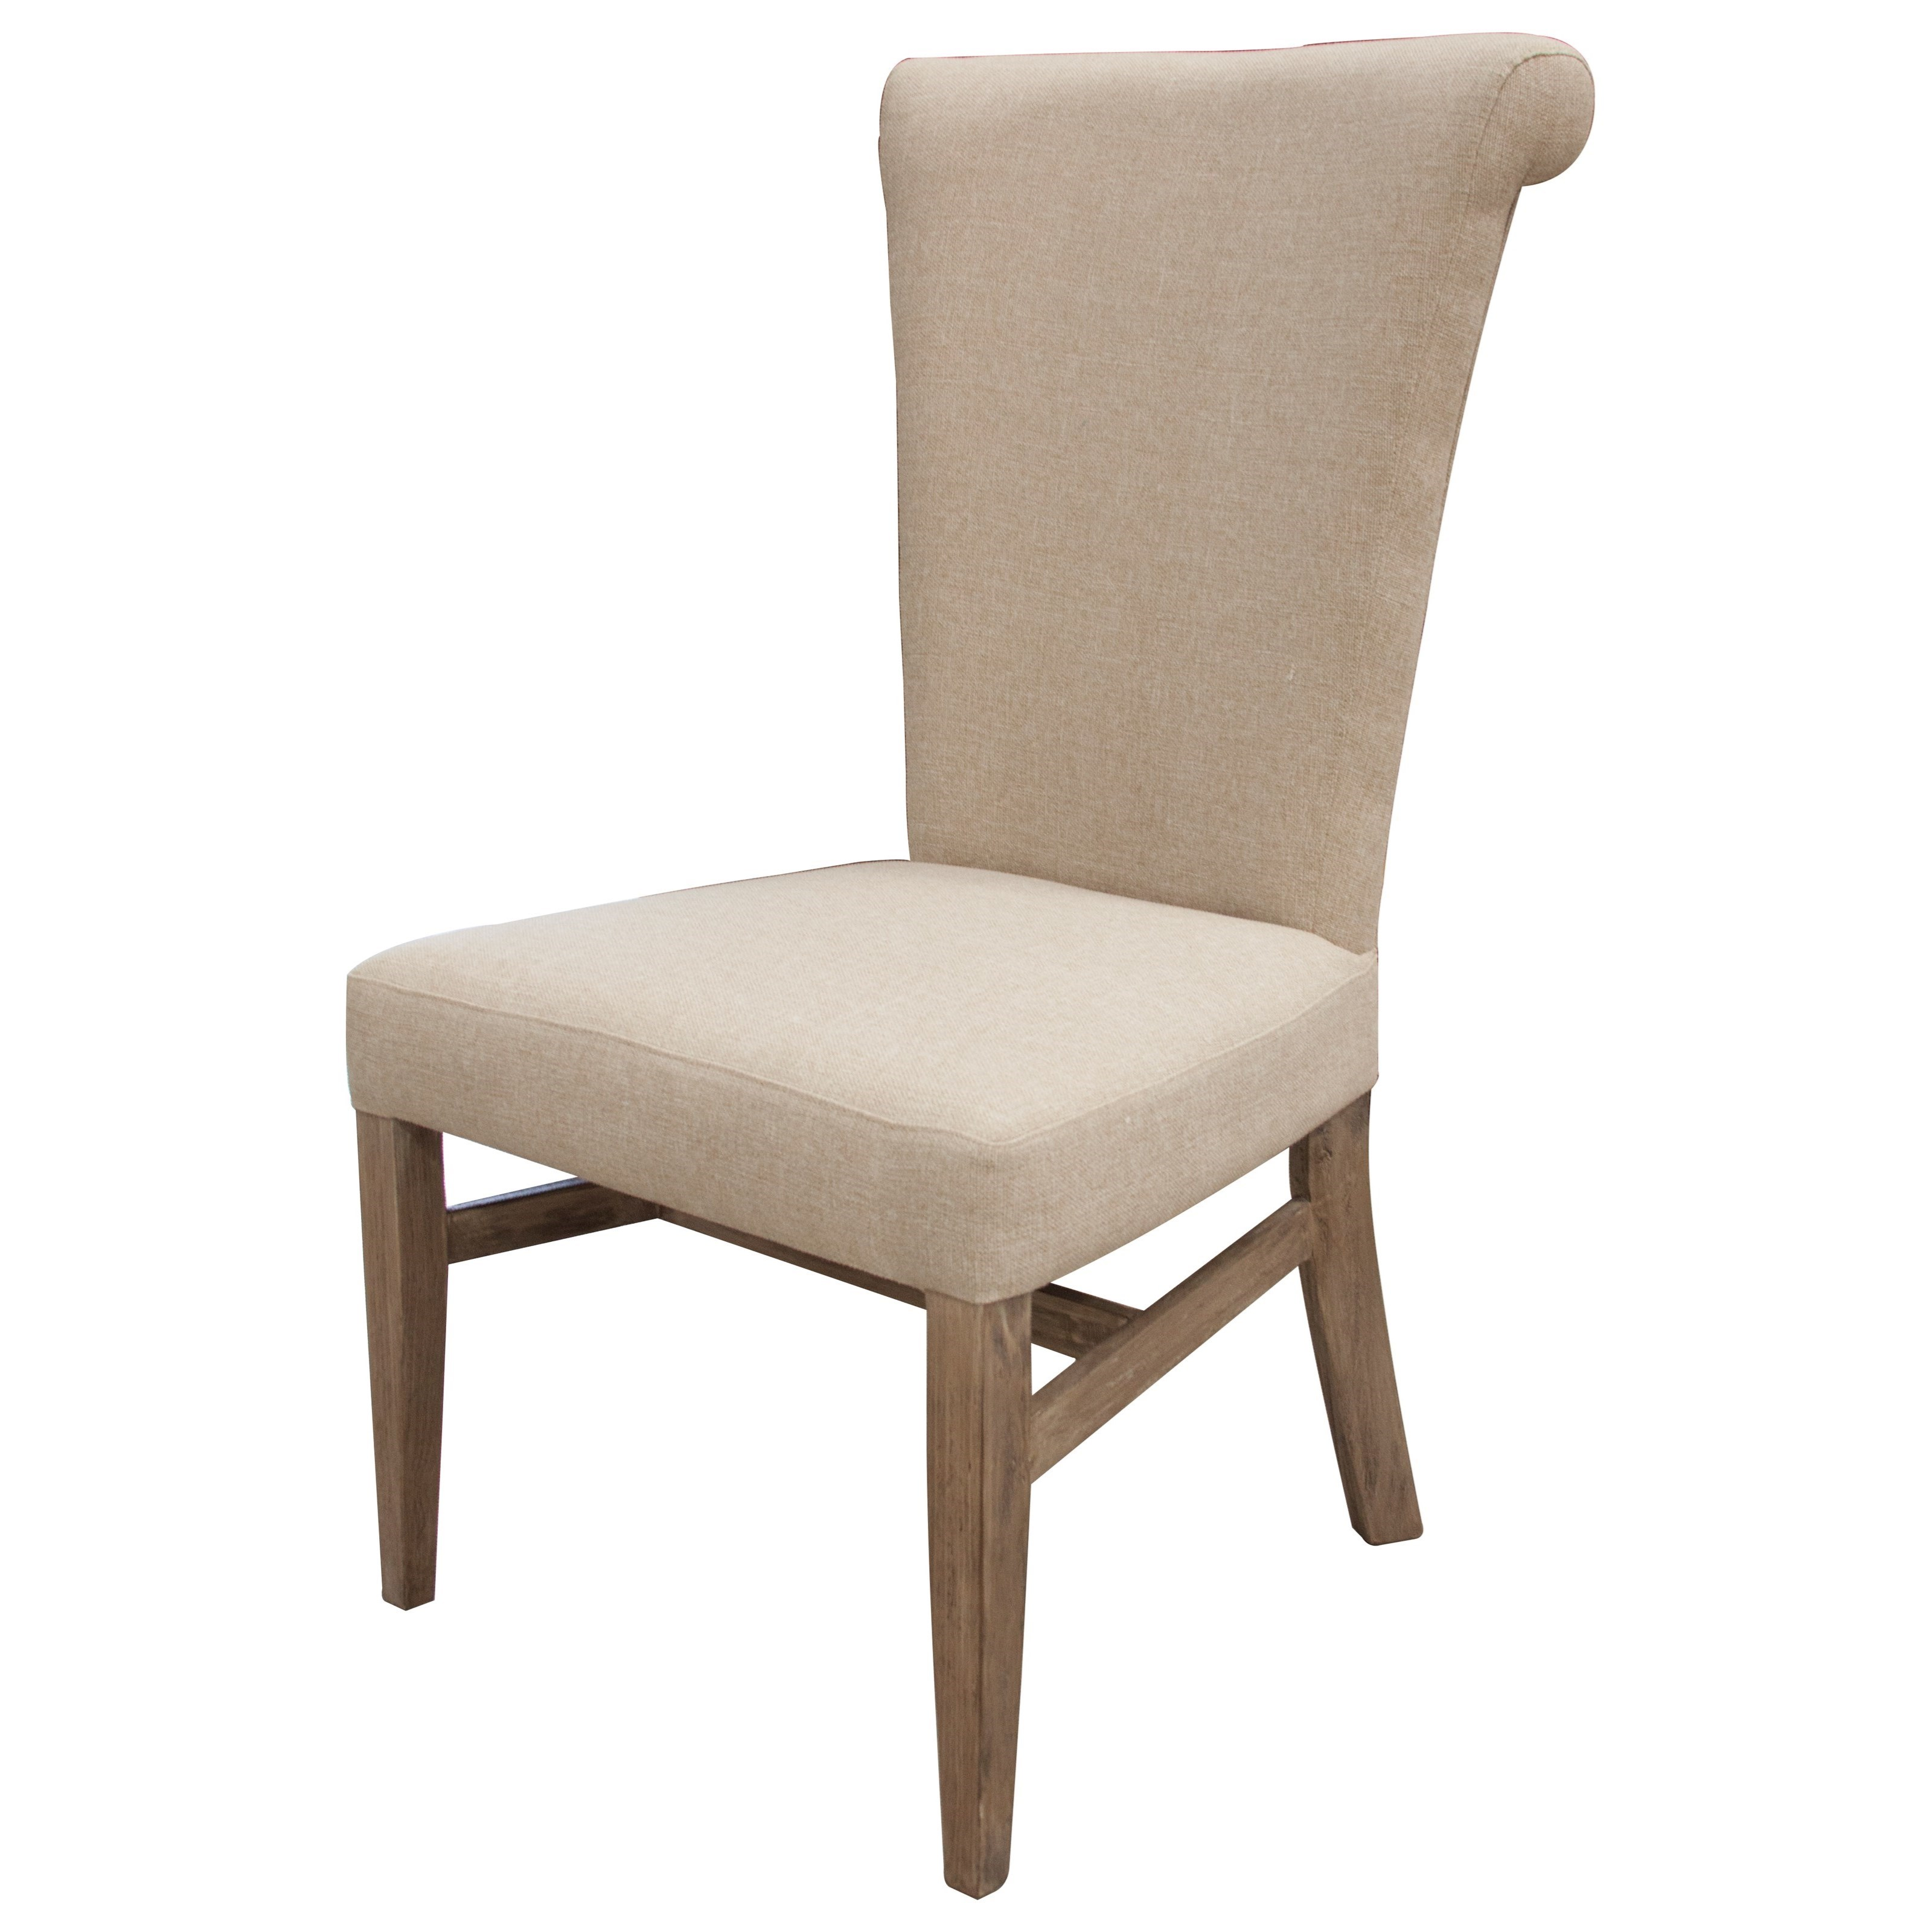 Bonanza Sand Upholstered Side Chair by International Furniture Direct at Dunk & Bright Furniture